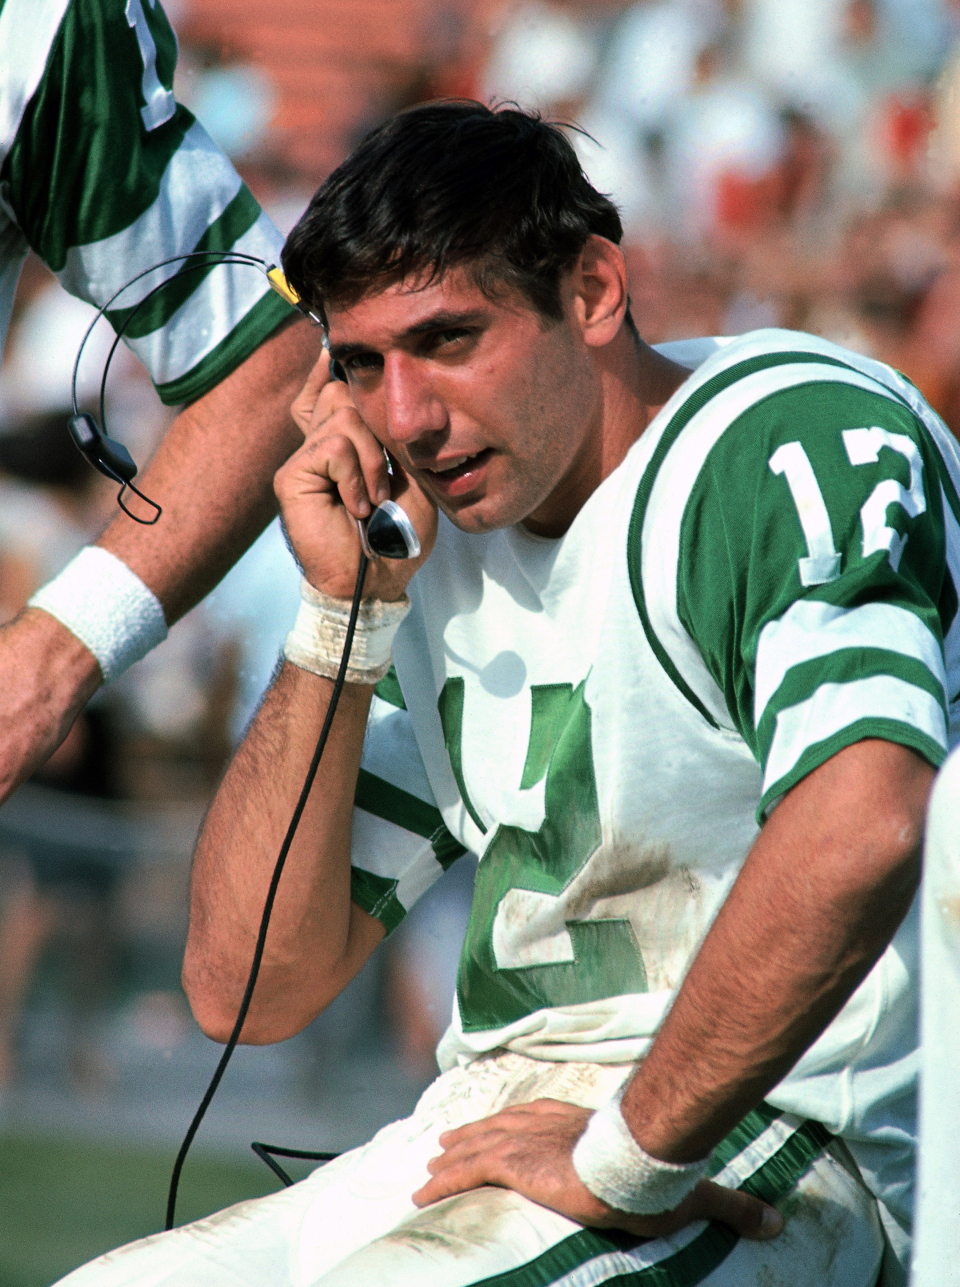 Broadway No!   Namath's career stats: 170 TDs, 220 Int, 50.1% completion